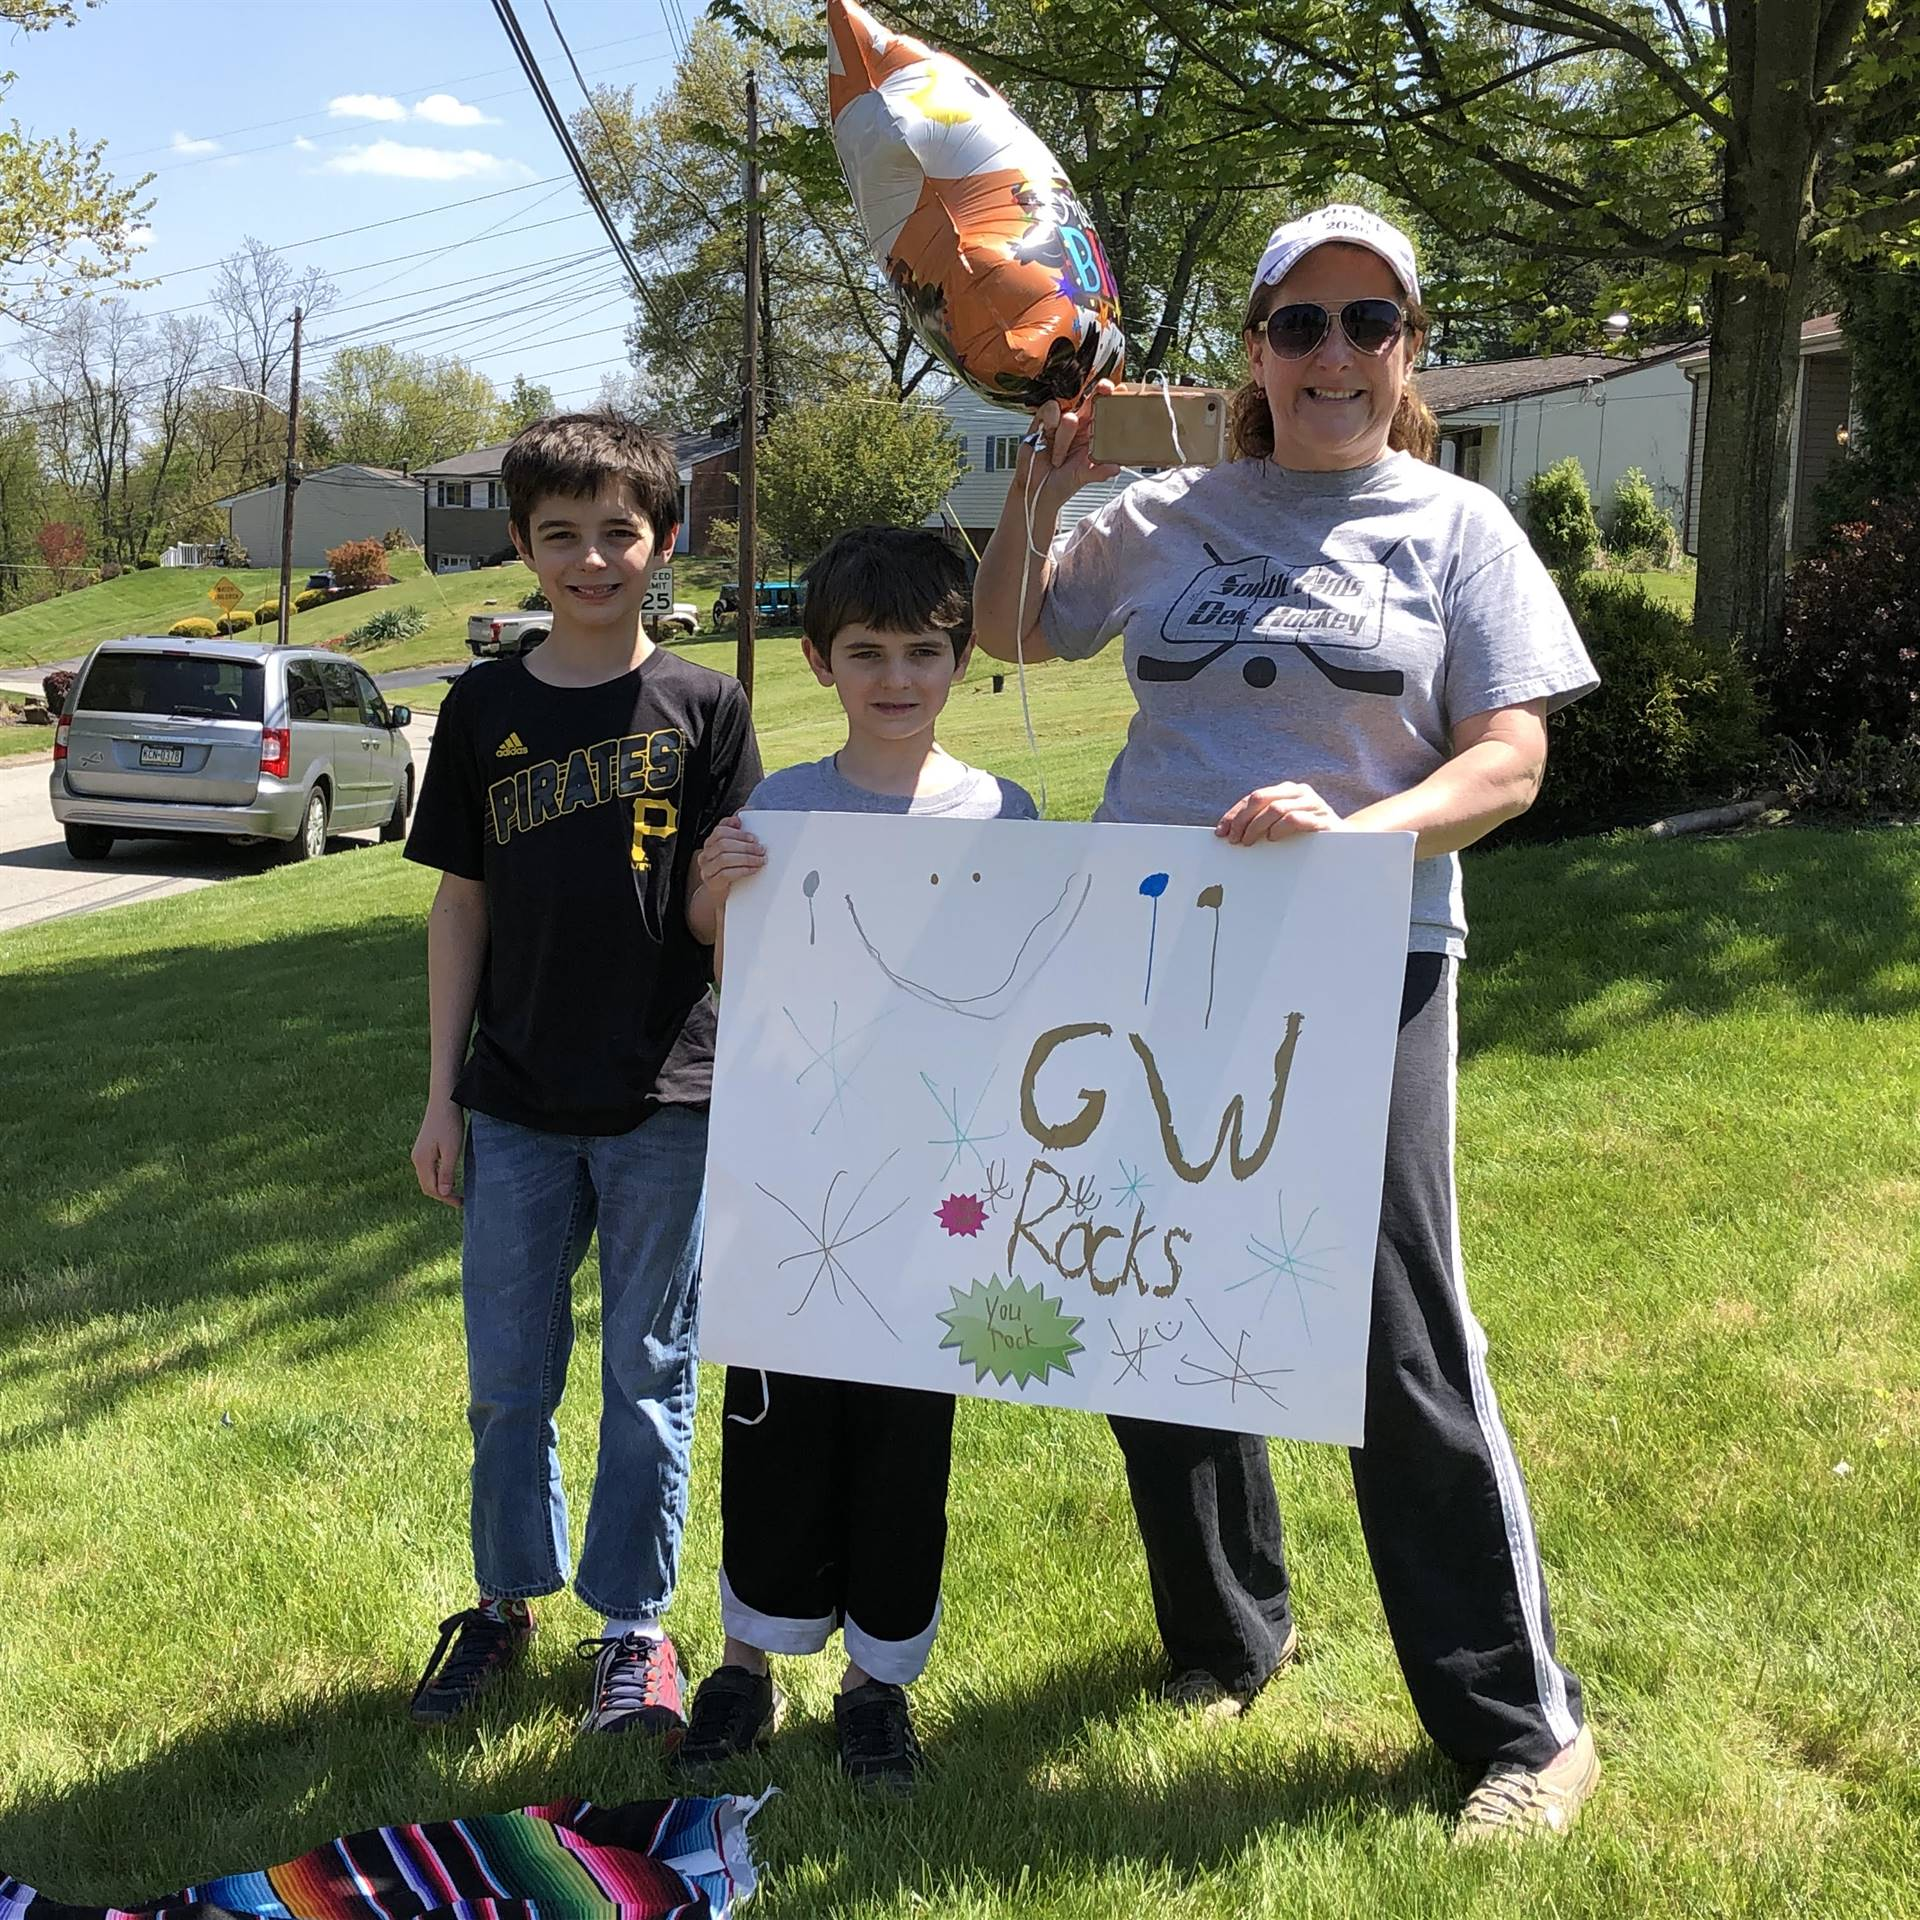 Mom and two students holding a sign